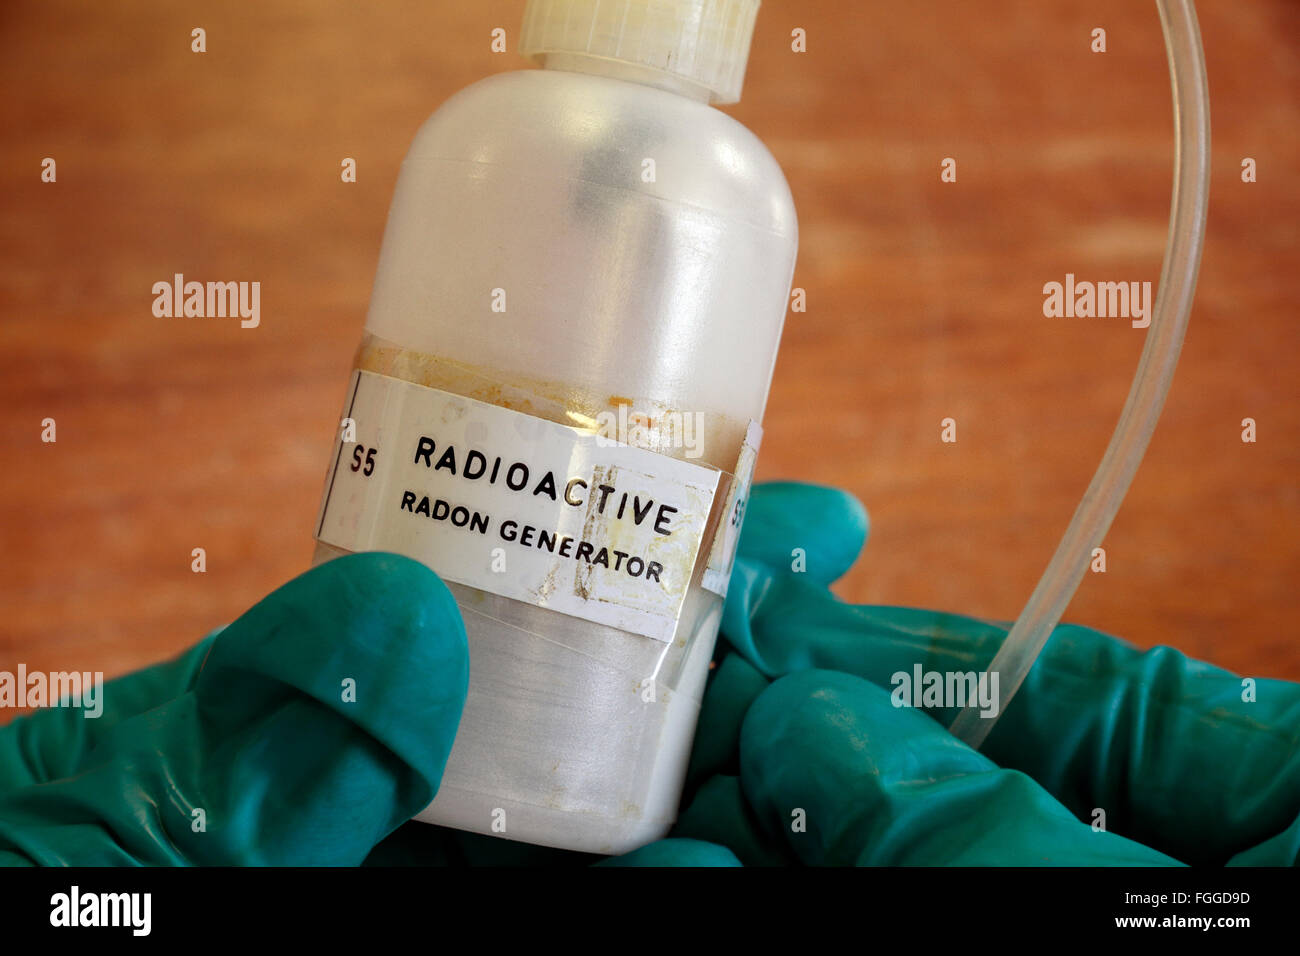 A UK high school radioactive radon 220 generator being held in a gloved hand above a table. - Stock Image